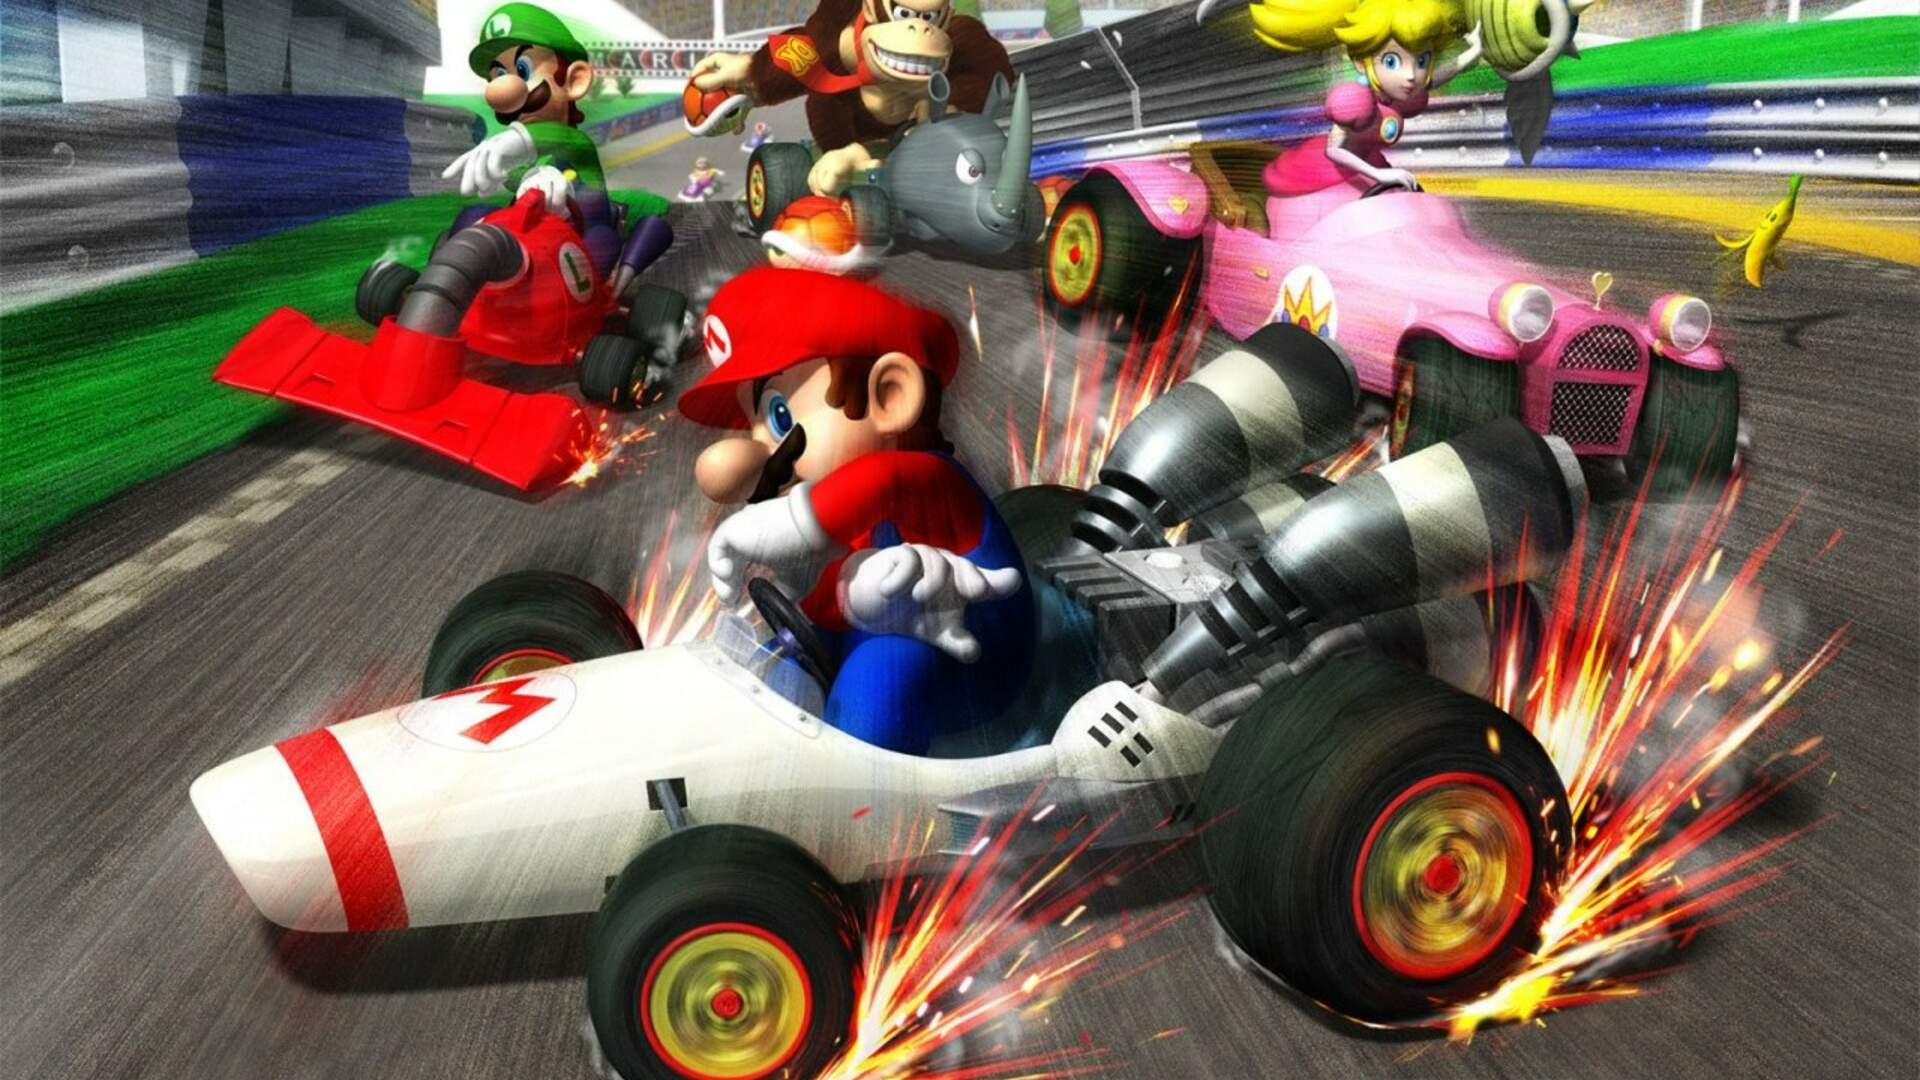 Please Understand: Nintendo Shutting Down Online Services for Wii and DS